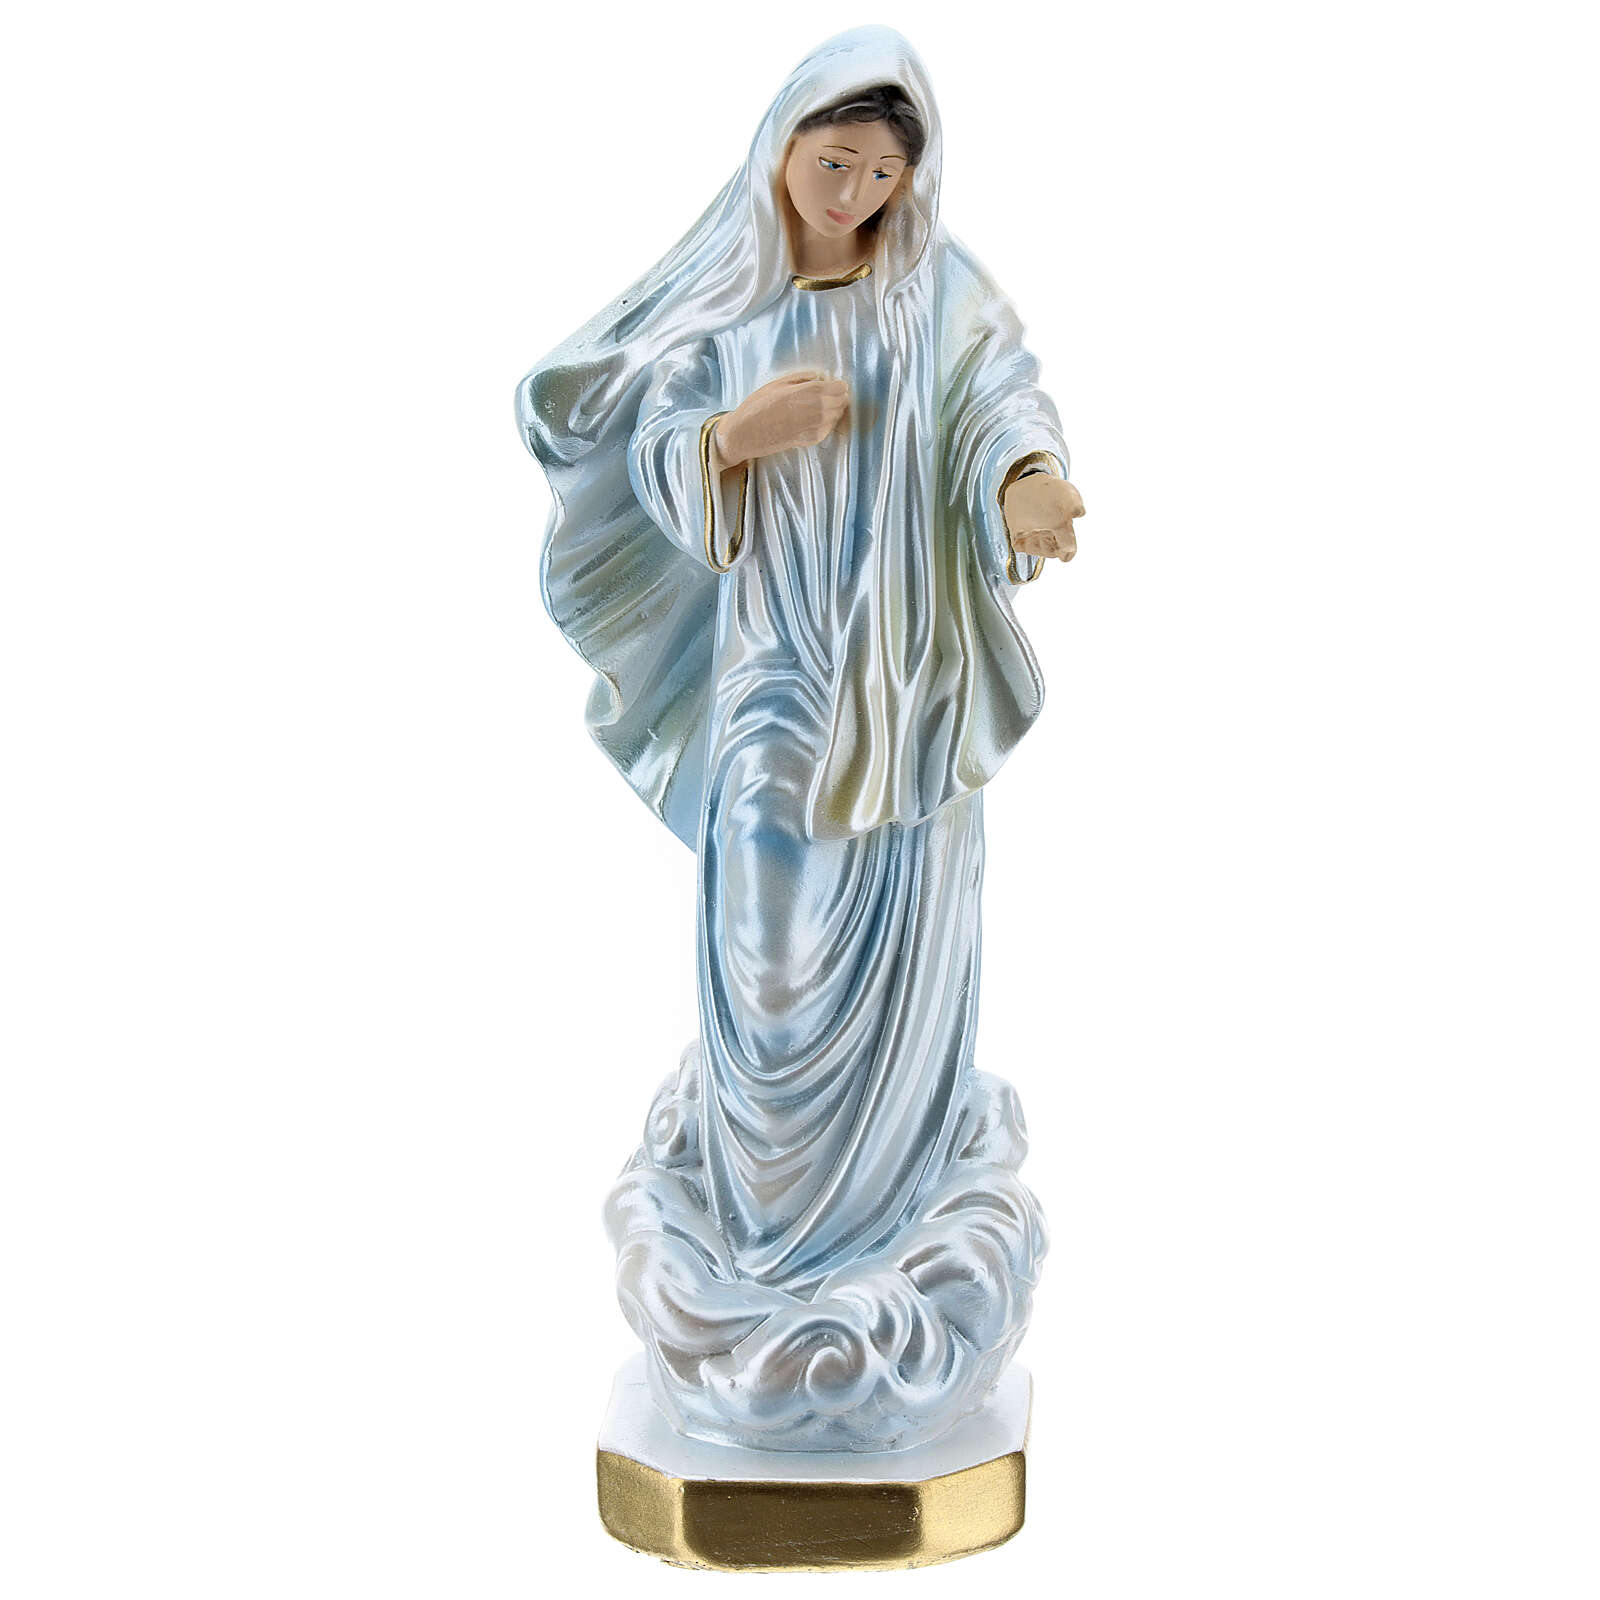 Mother-of-pearl plaster statue of Our Lady of Medjugorje 20 cm 4